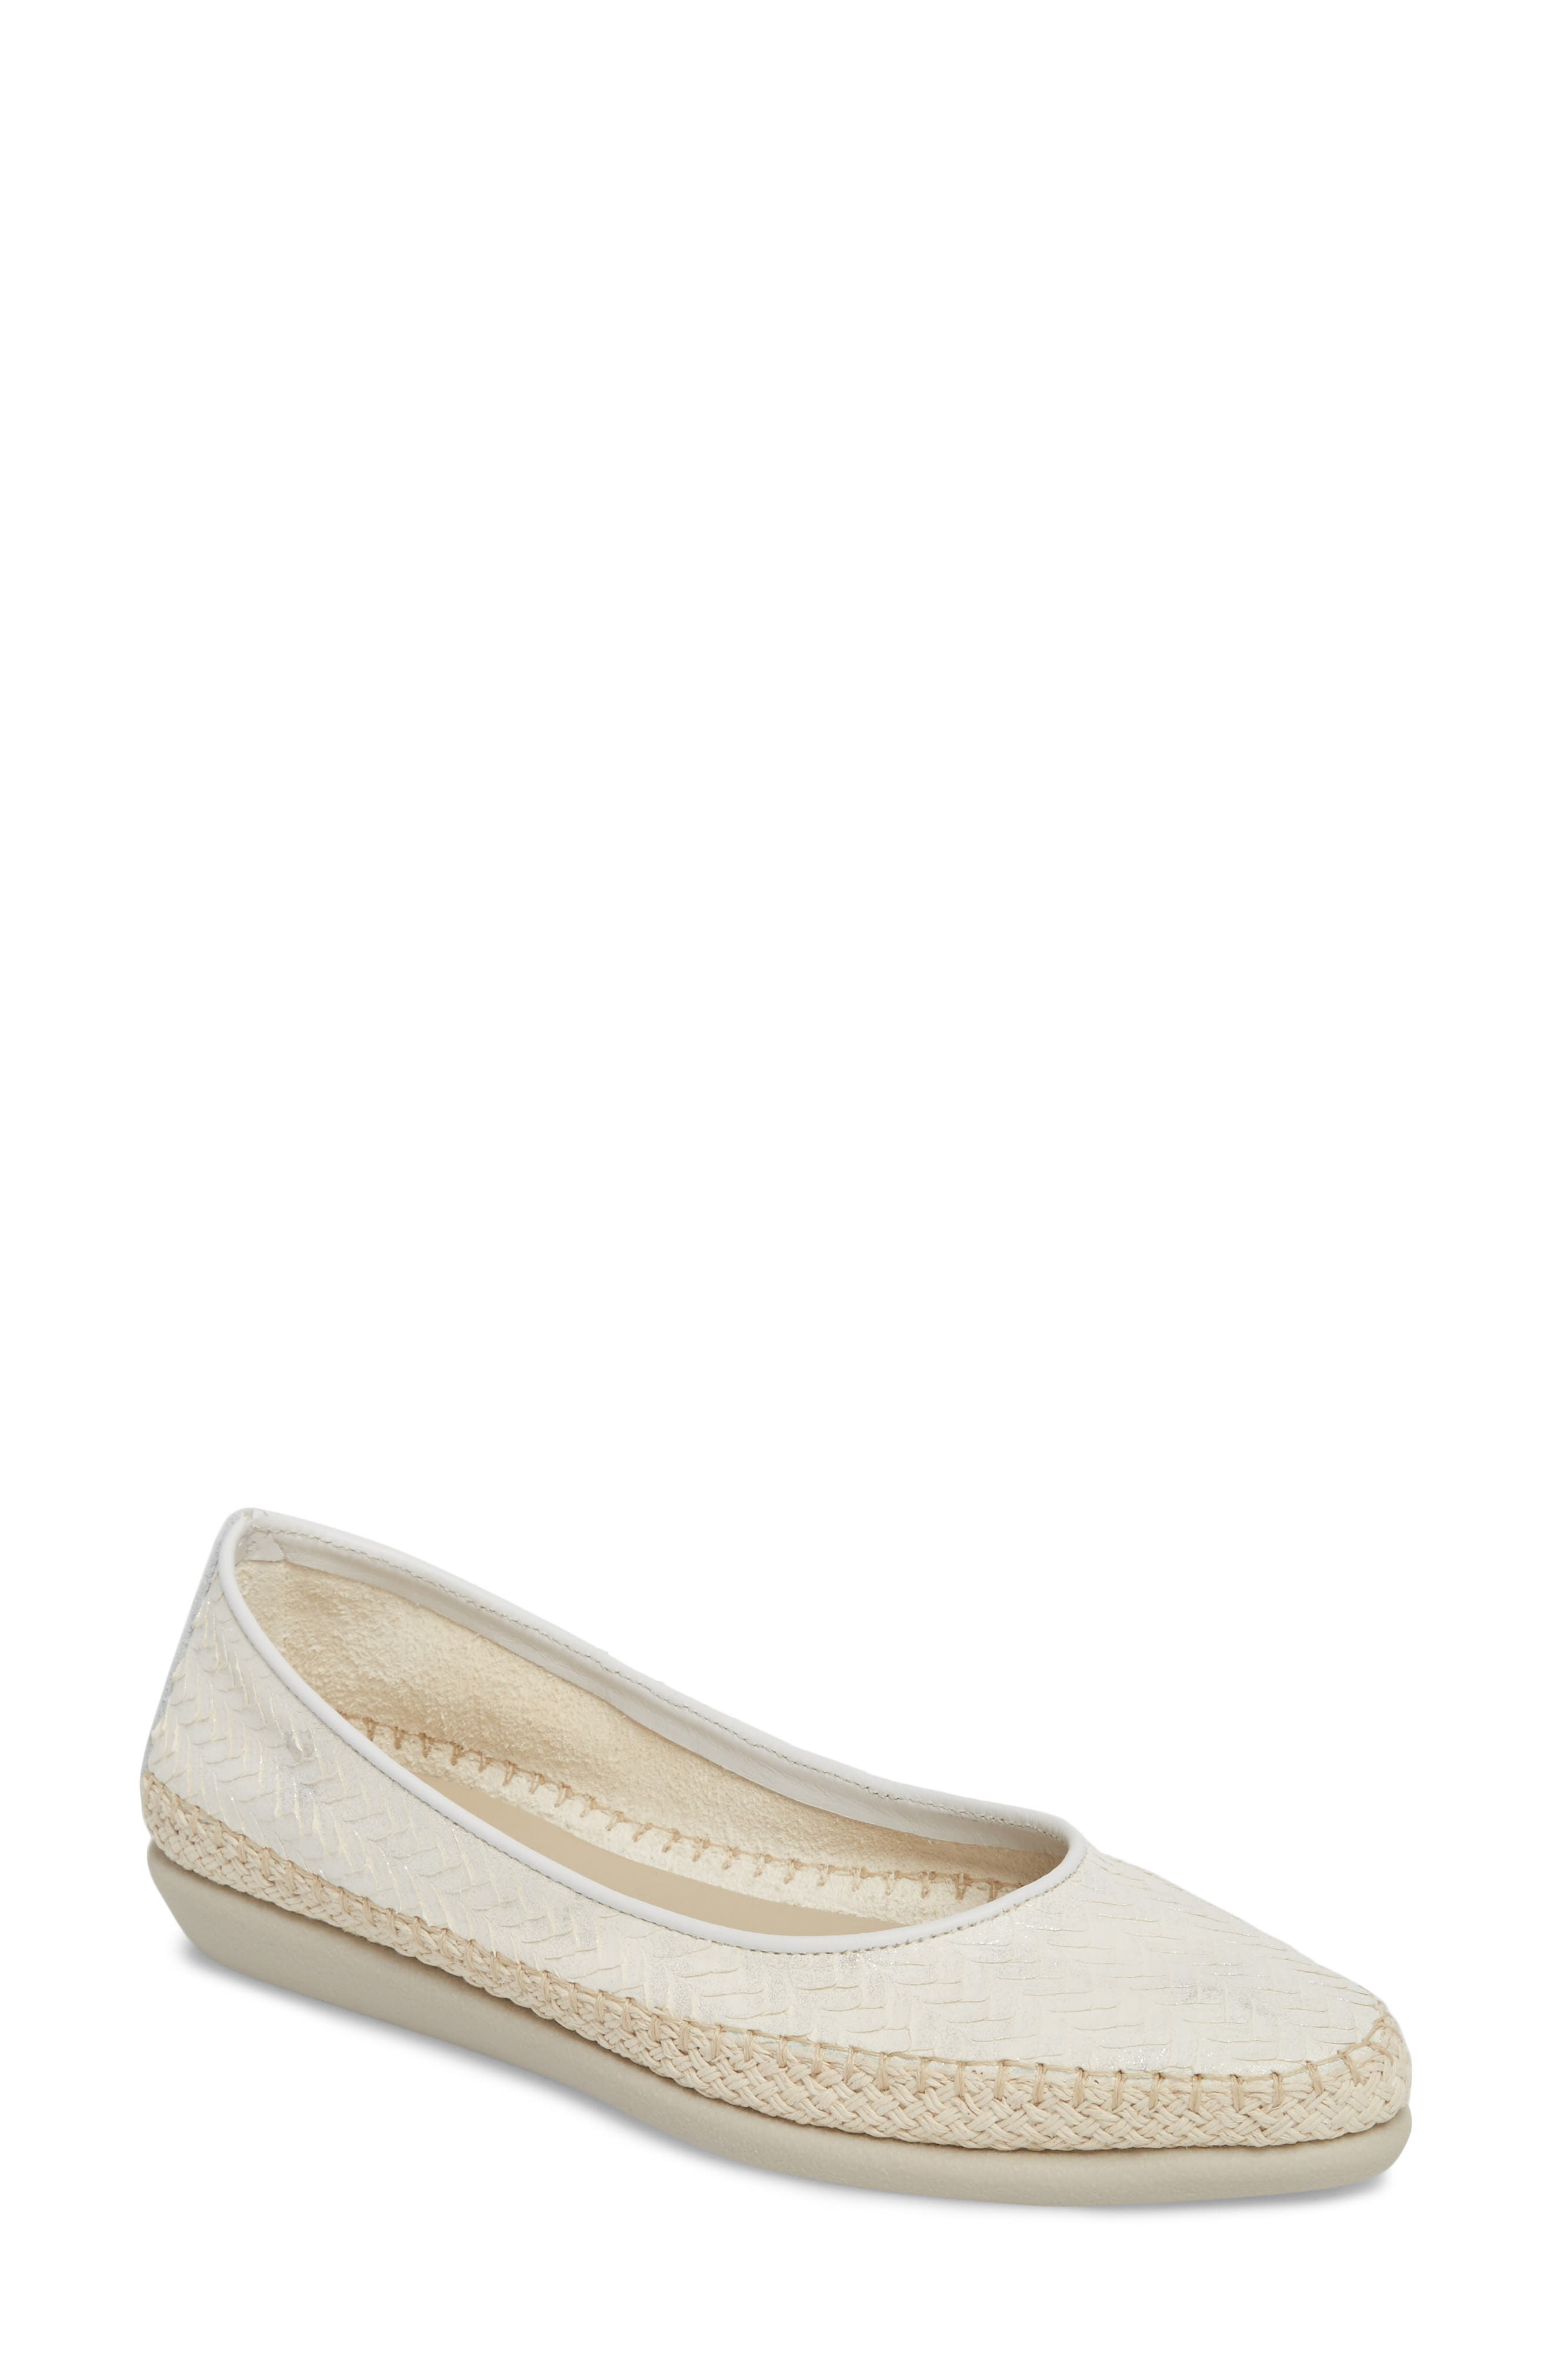 'Torri' Perforated Espadrille Flat,                             Main thumbnail 1, color,                             Pearl Leather